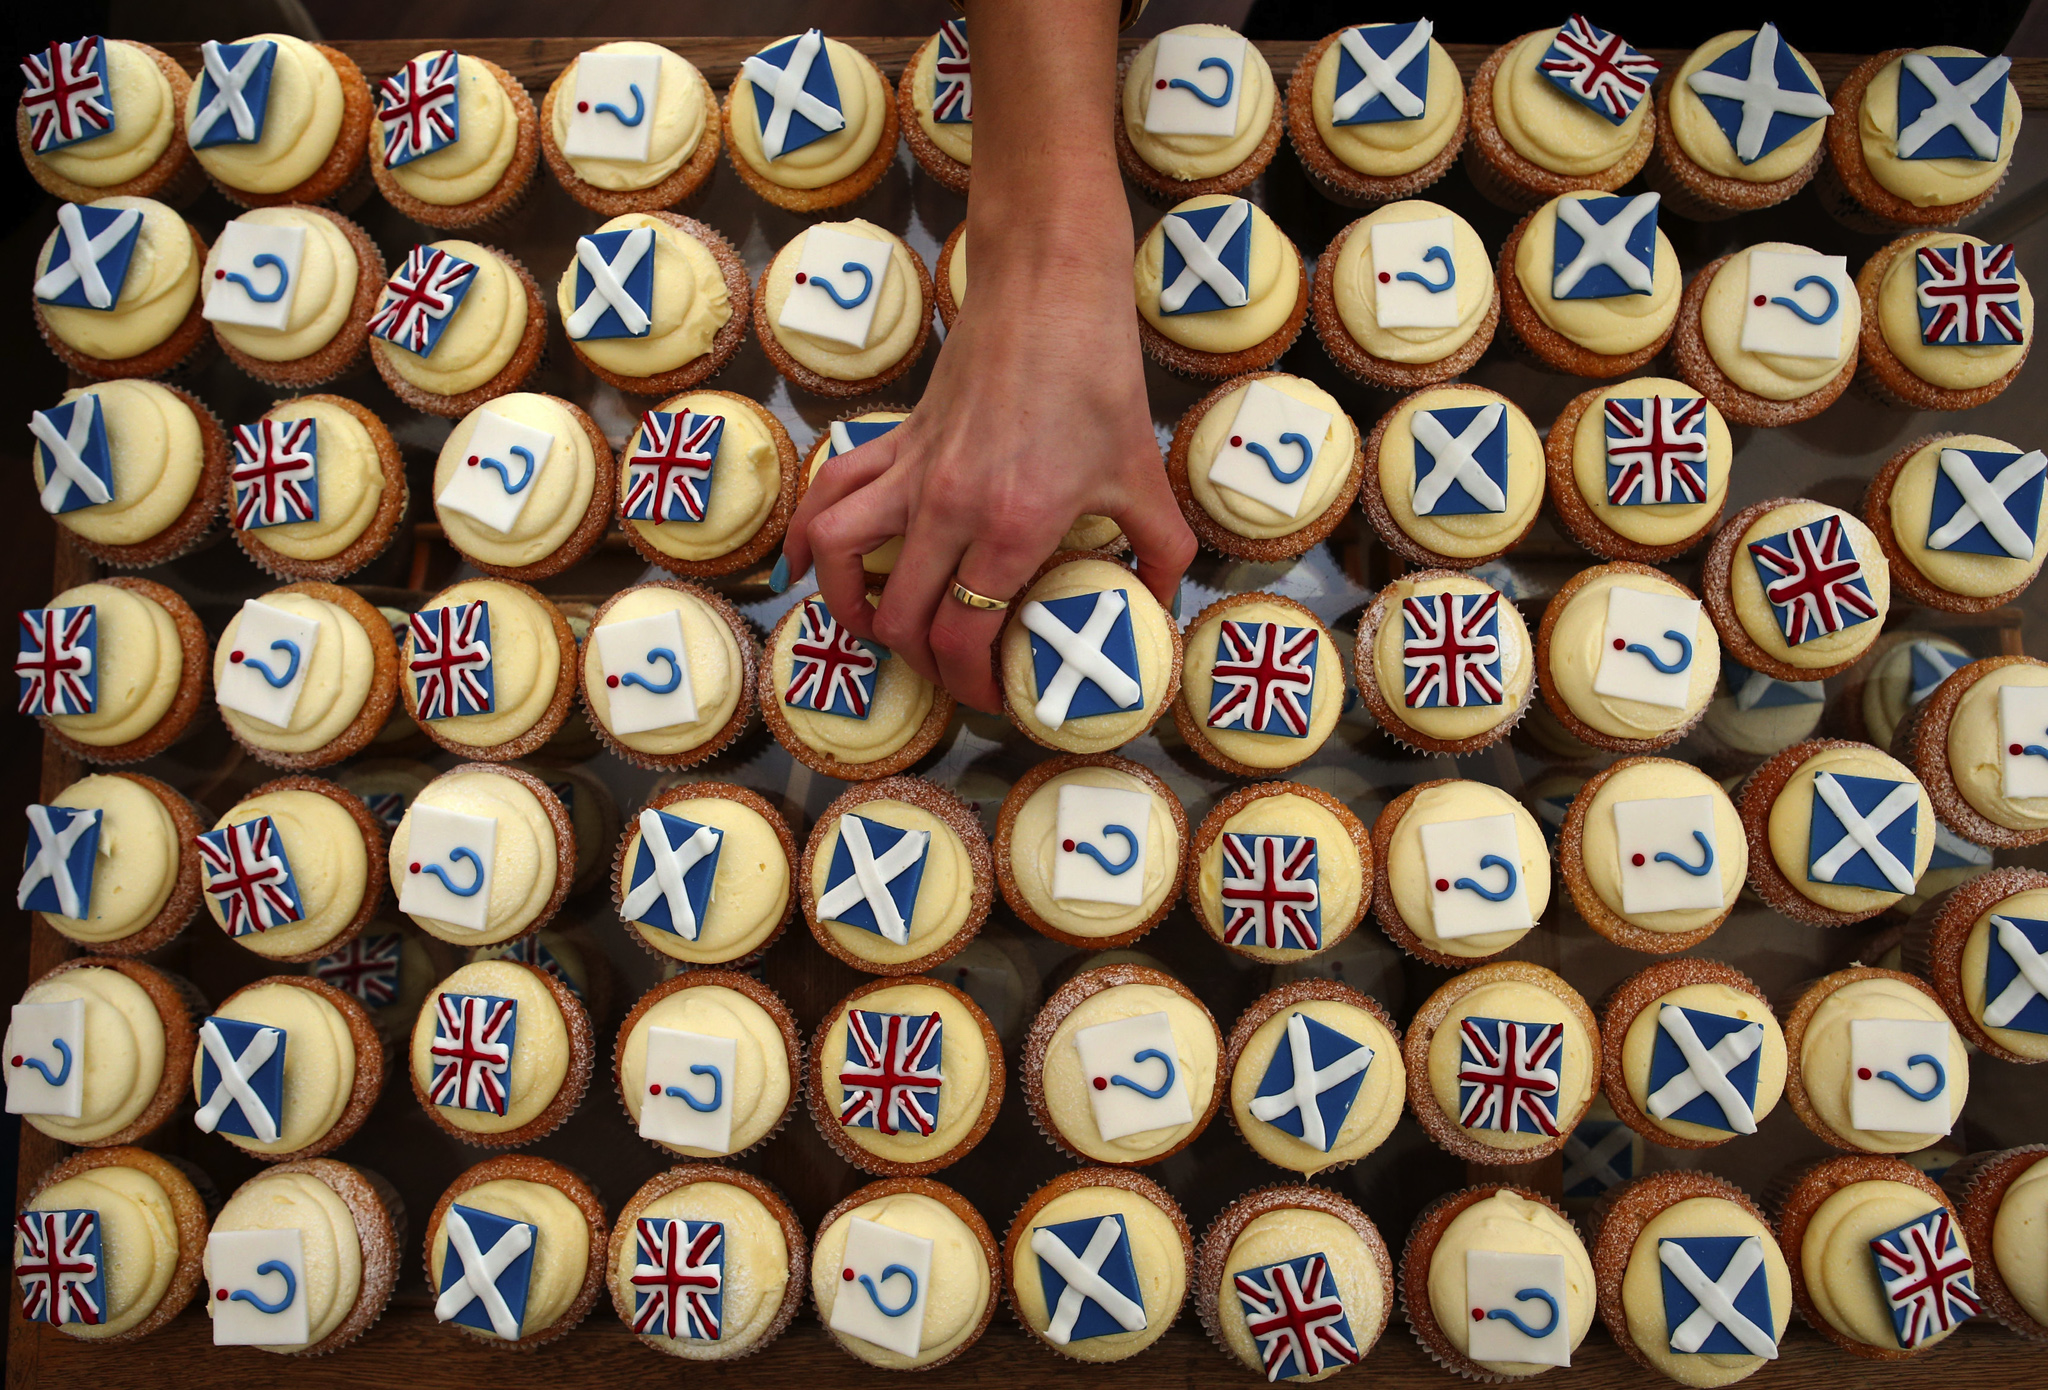 Edinburgh bakery Cuckoo's launch their own referendum opinion poll survey, where you can buy your Yes, No or Undecided cupcake and the weekly results will be published on the bakery's Facebook and Twitter sites